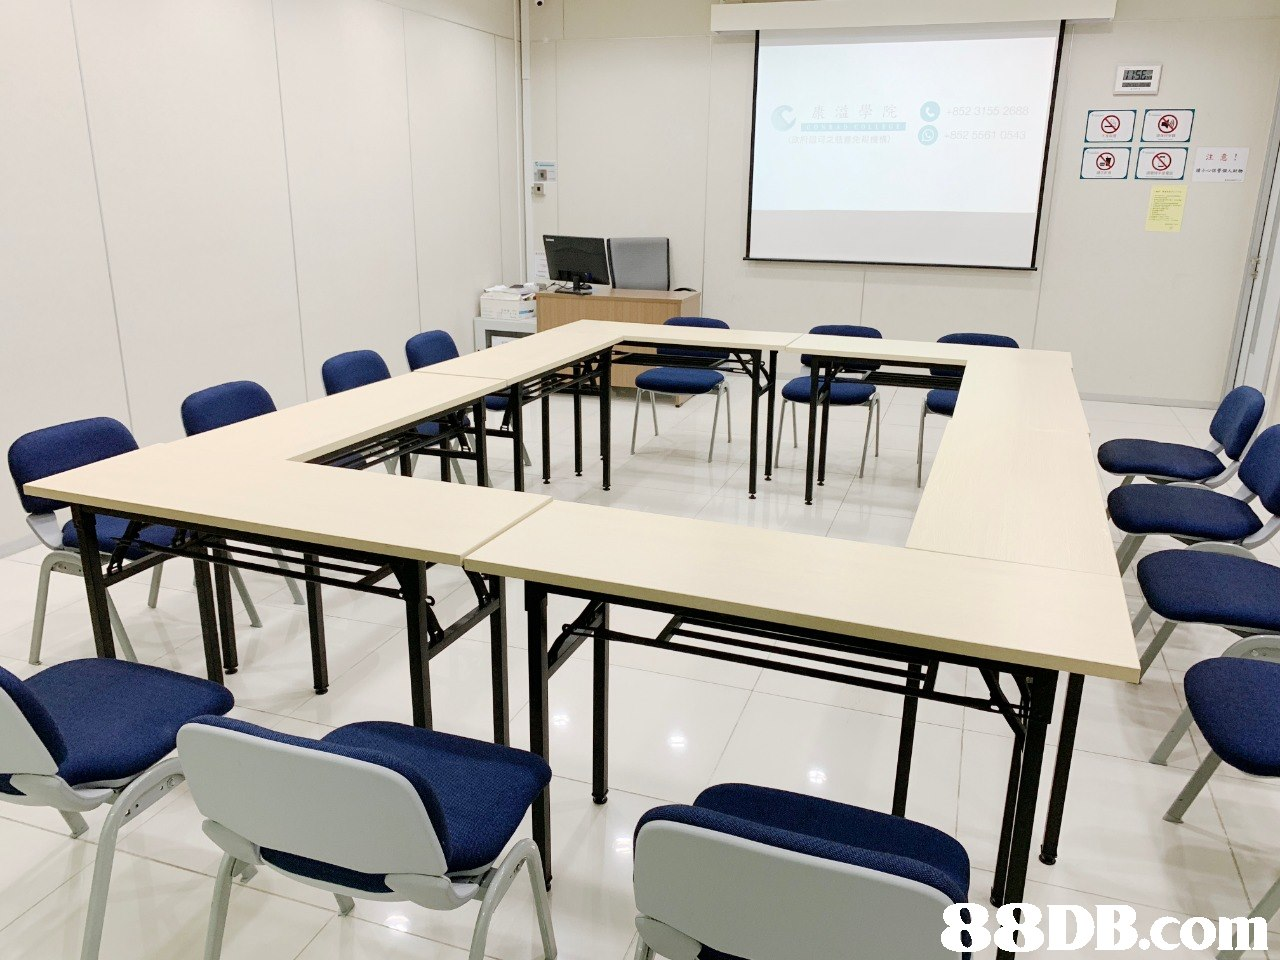 注意   Classroom,Room,Table,Furniture,Conference hall